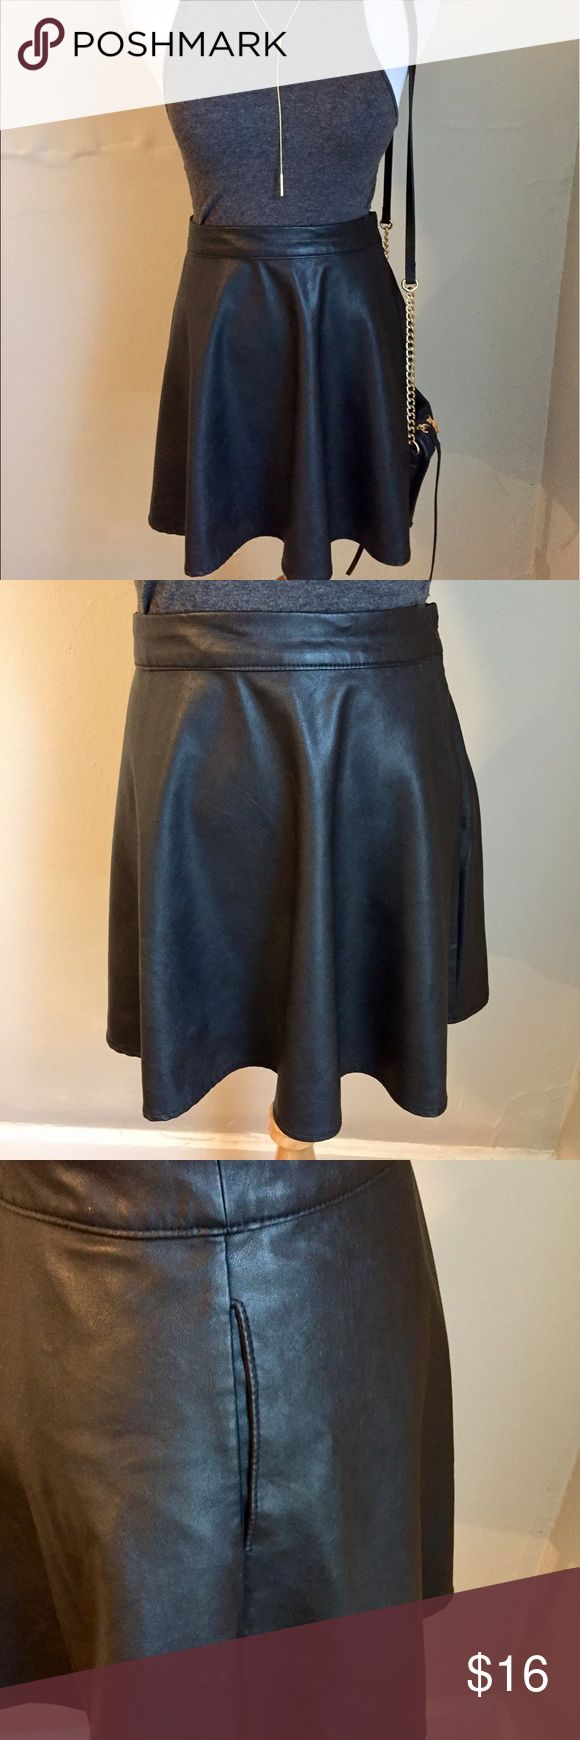 Abercrombie & Fitch black leather skater skirt  S Cute & flirty black leather skater skirt from Abercrombie & Fitch. Features two side pockets. Pare with a crop top, strappy wedges, and you've got the perfect party look. Abercrombie & Fitch Skirts Mini